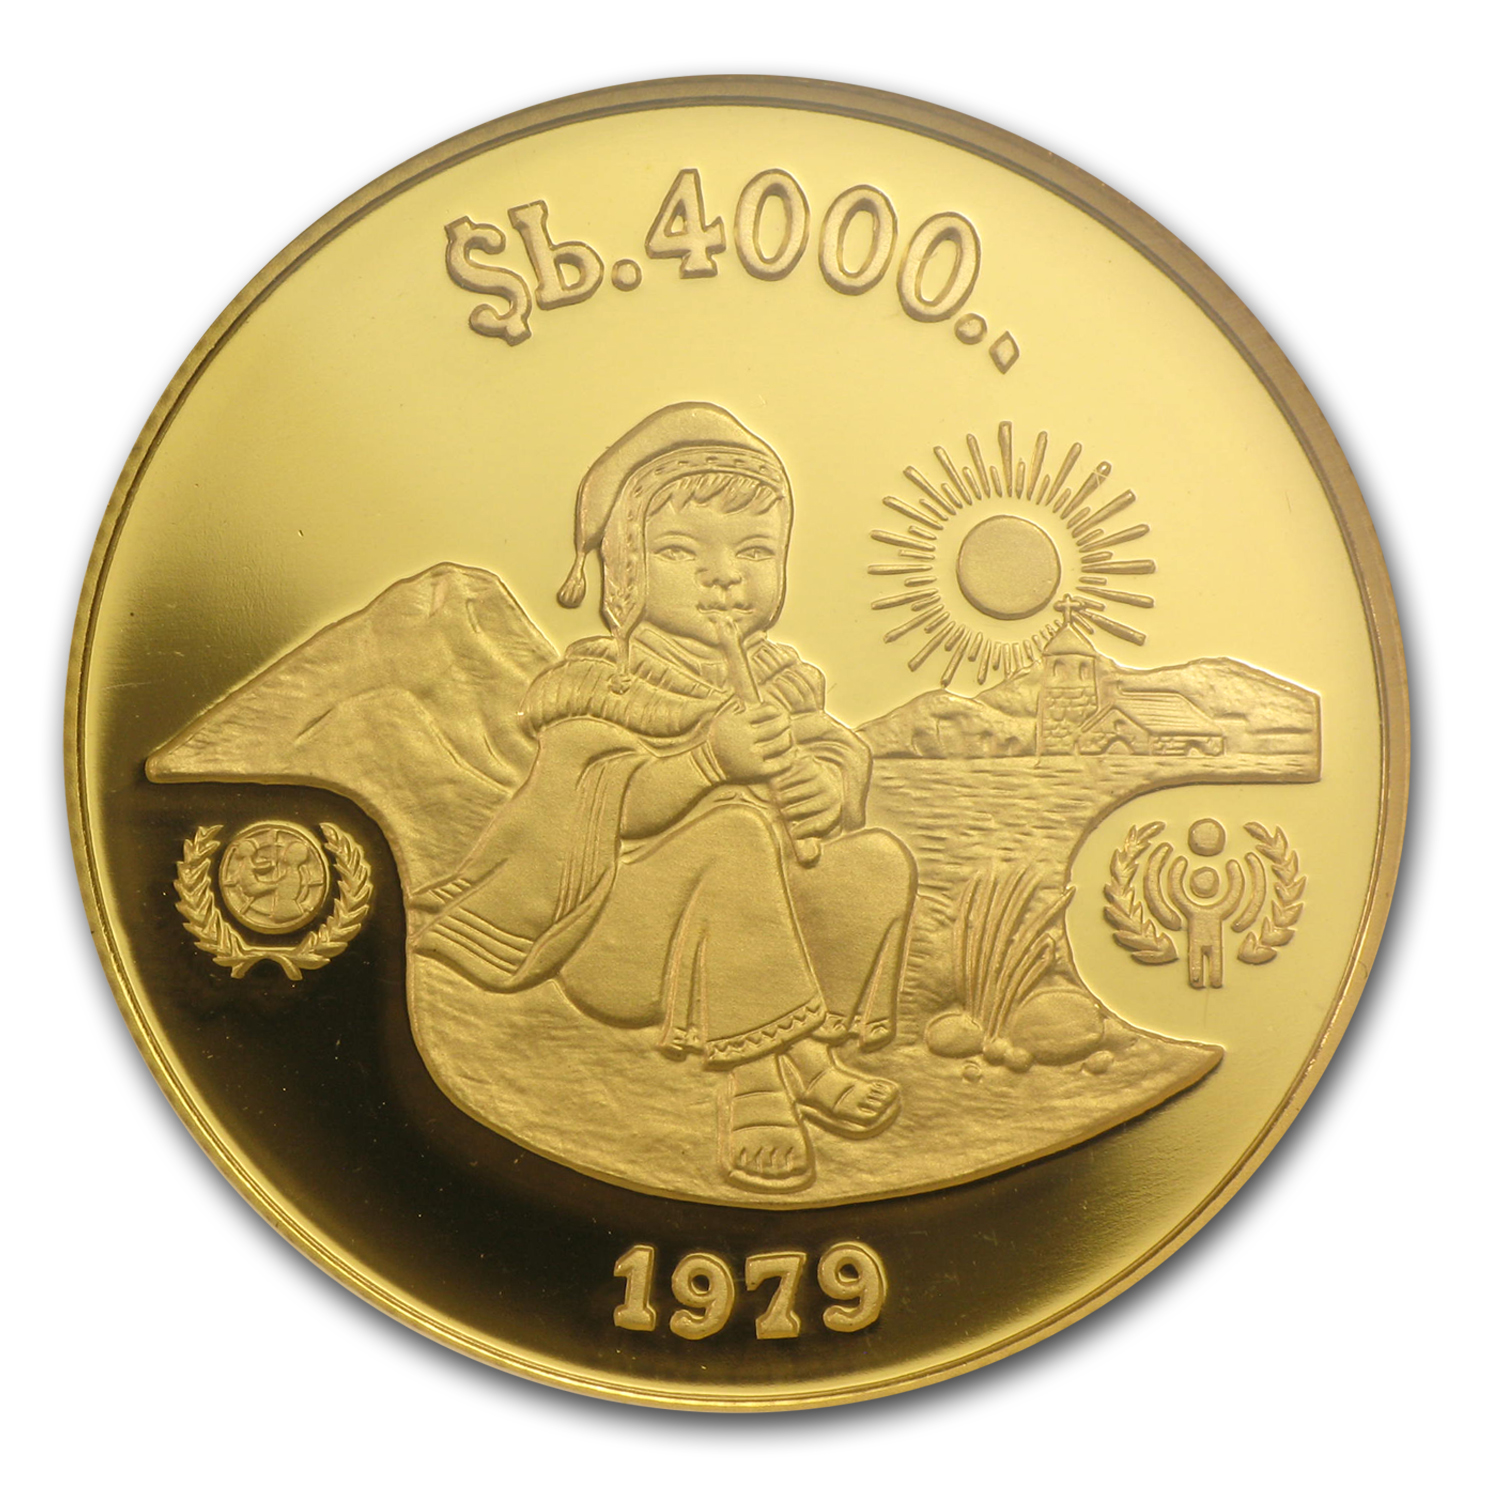 Bolivia 1979 4000 Pesos Gold Coin (Proof)